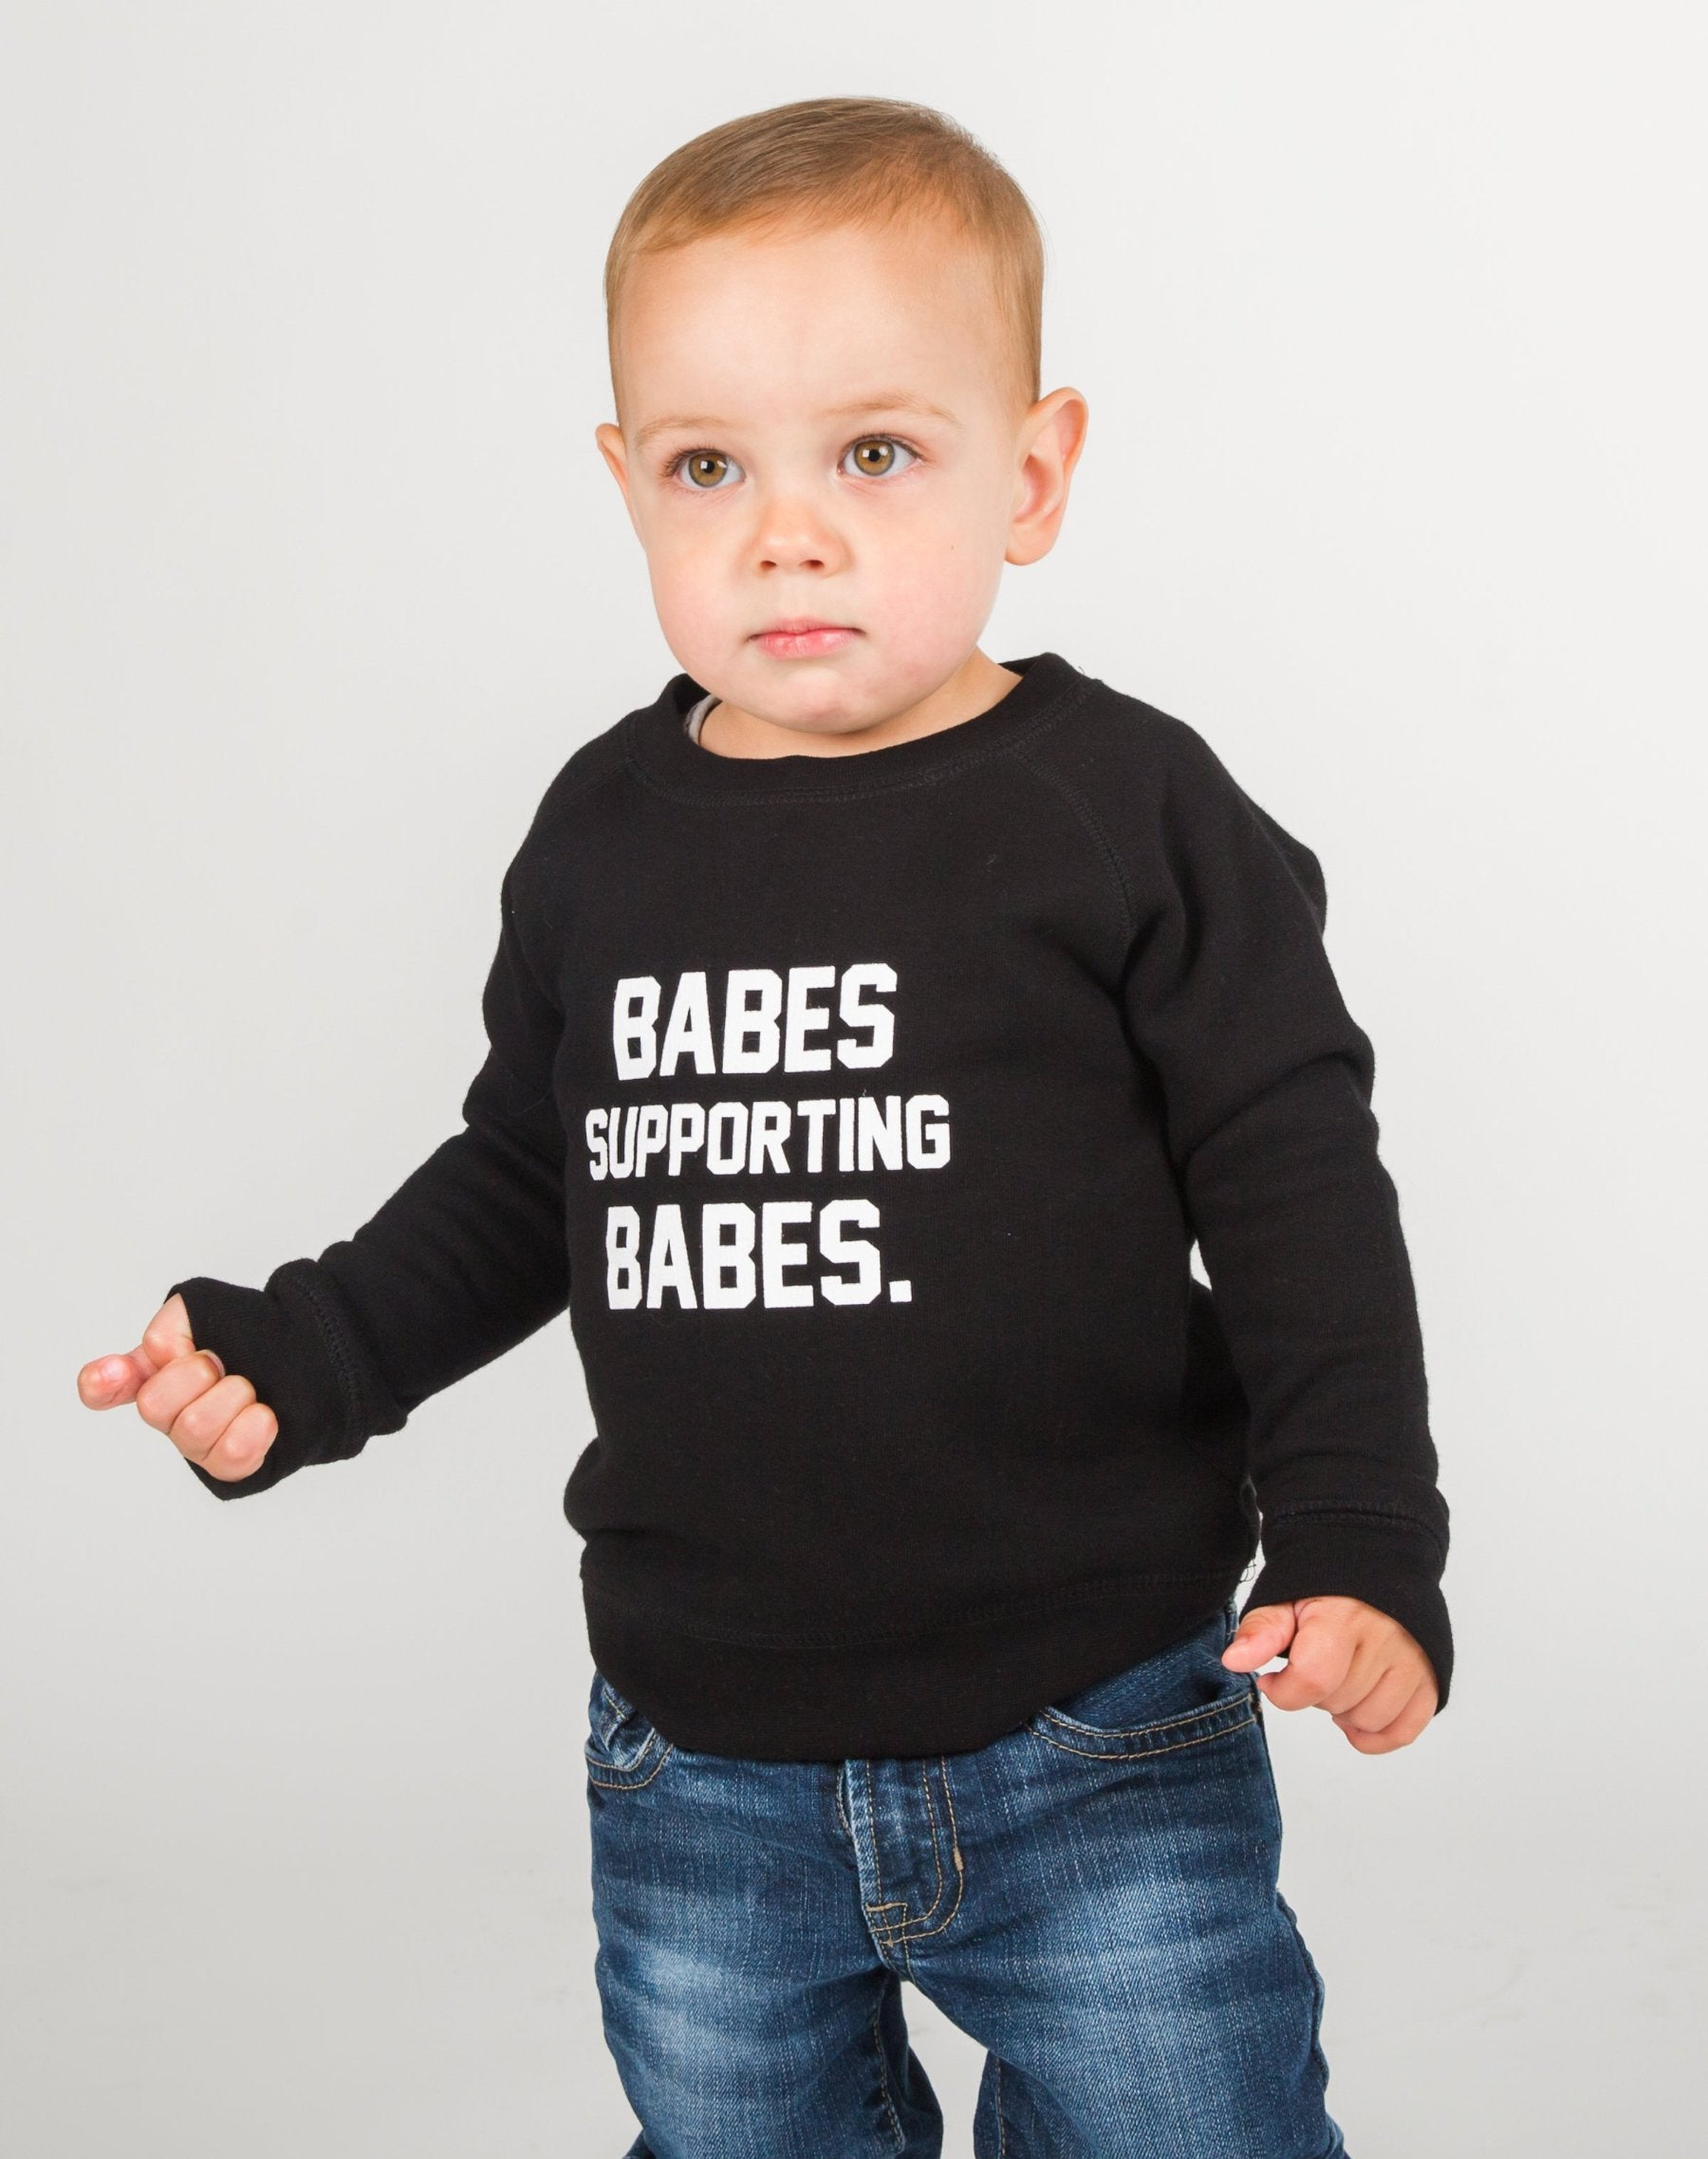 Photo of baby wearing the Babes Supporting Babes Little Babes classic crew neck sweatshirt in black by Brunette the Label.